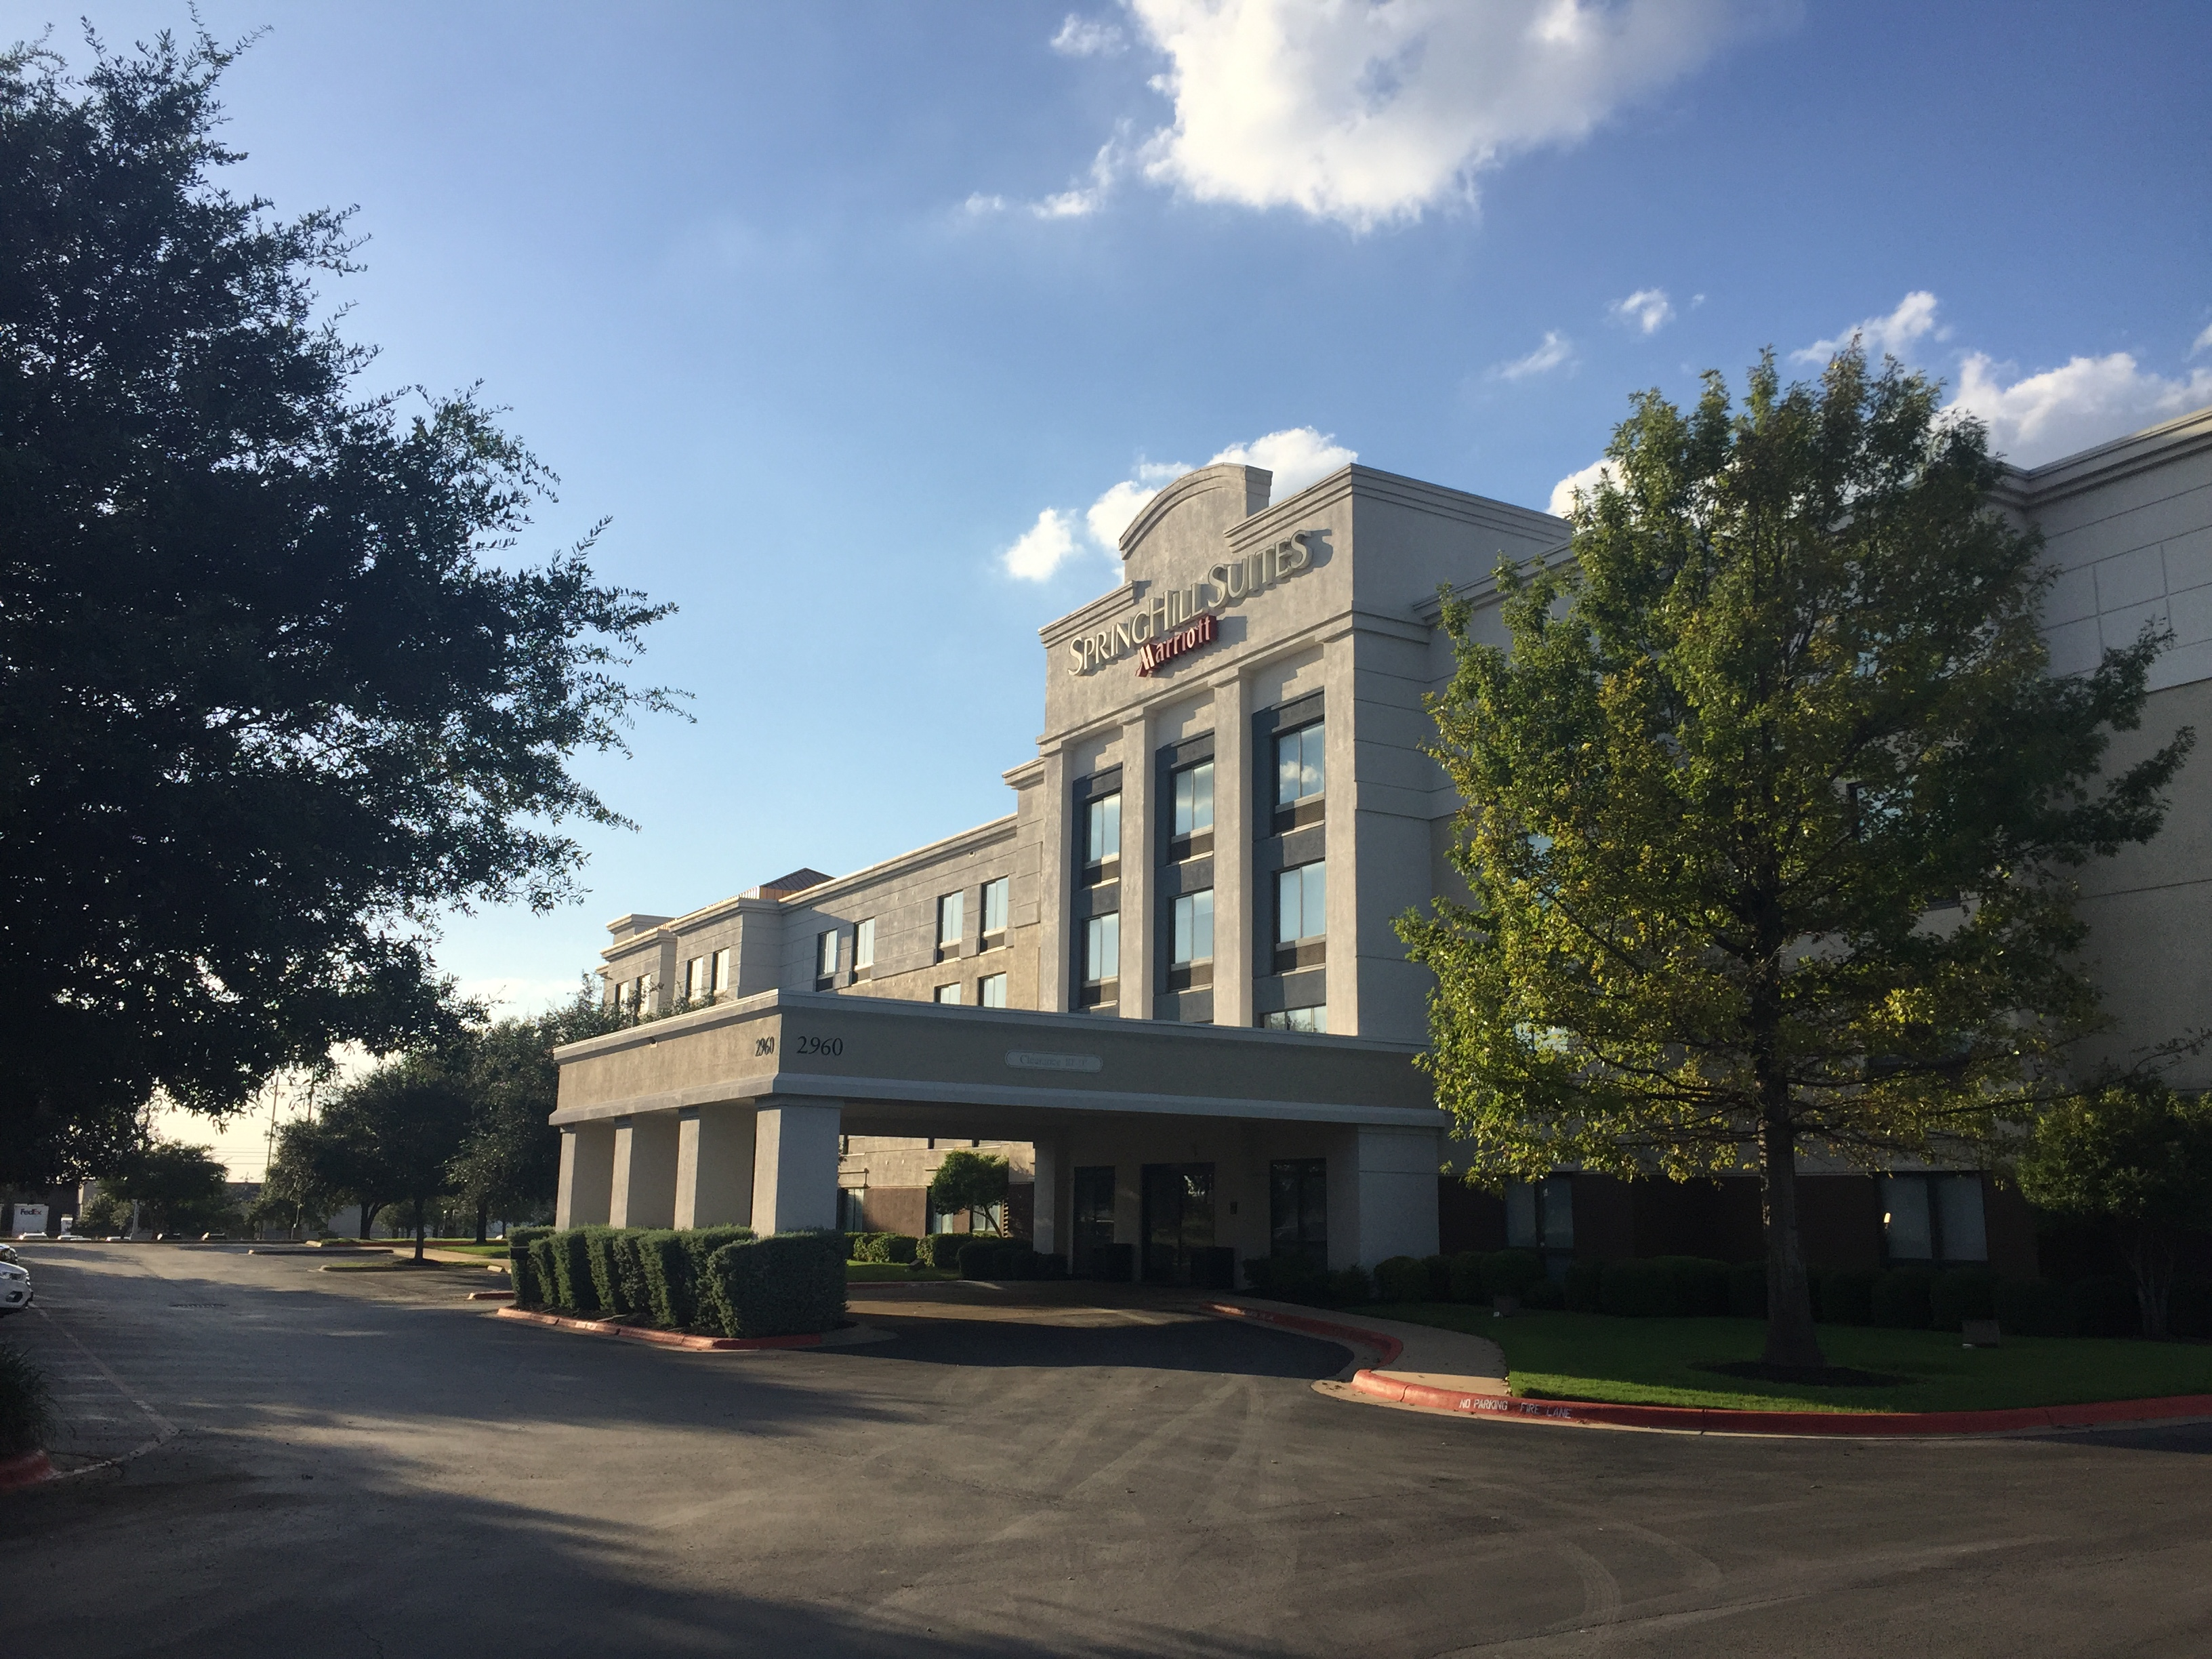 SpringHill Suites in Round Rock (KXAN Photo/Alicia Inns)